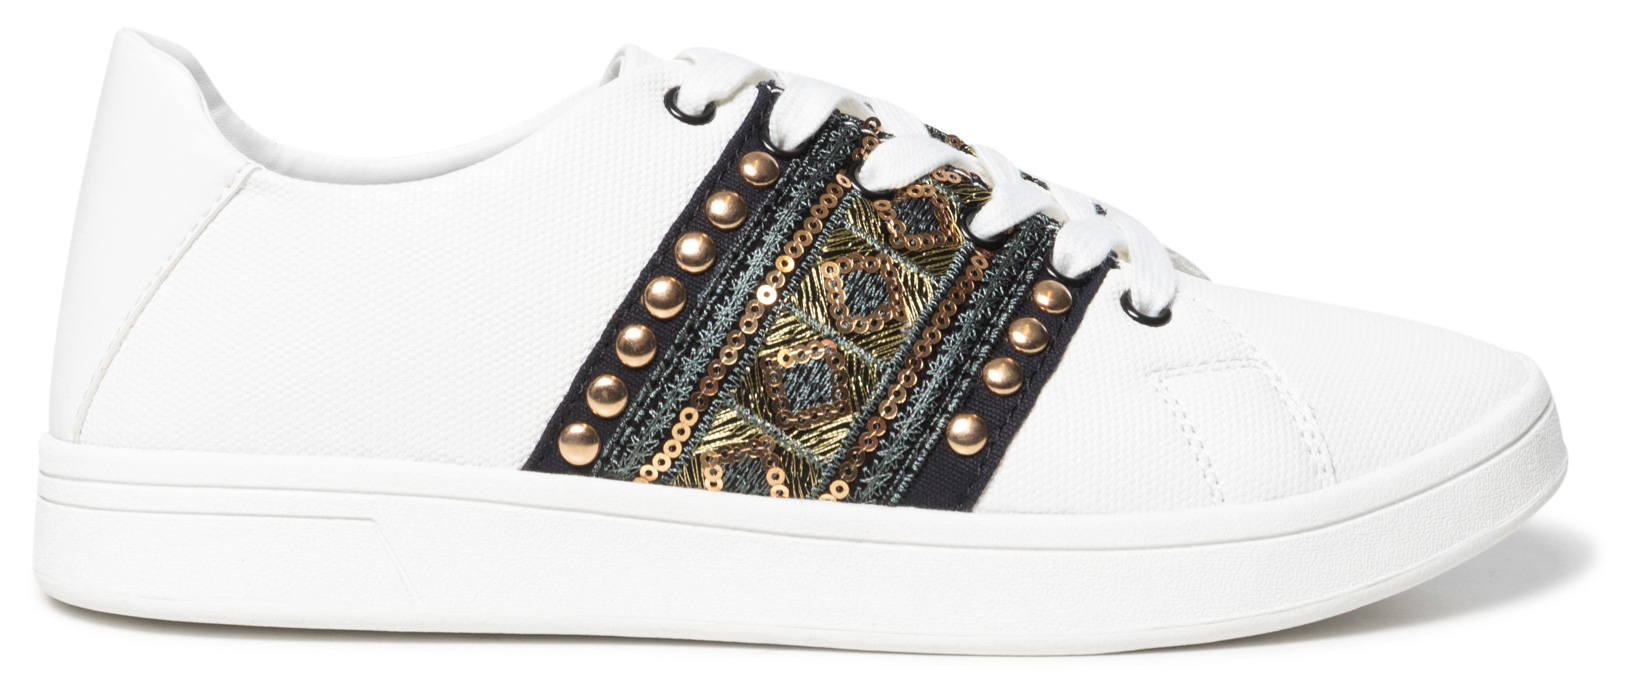 Desigual white sneakers Shoes Cosmic